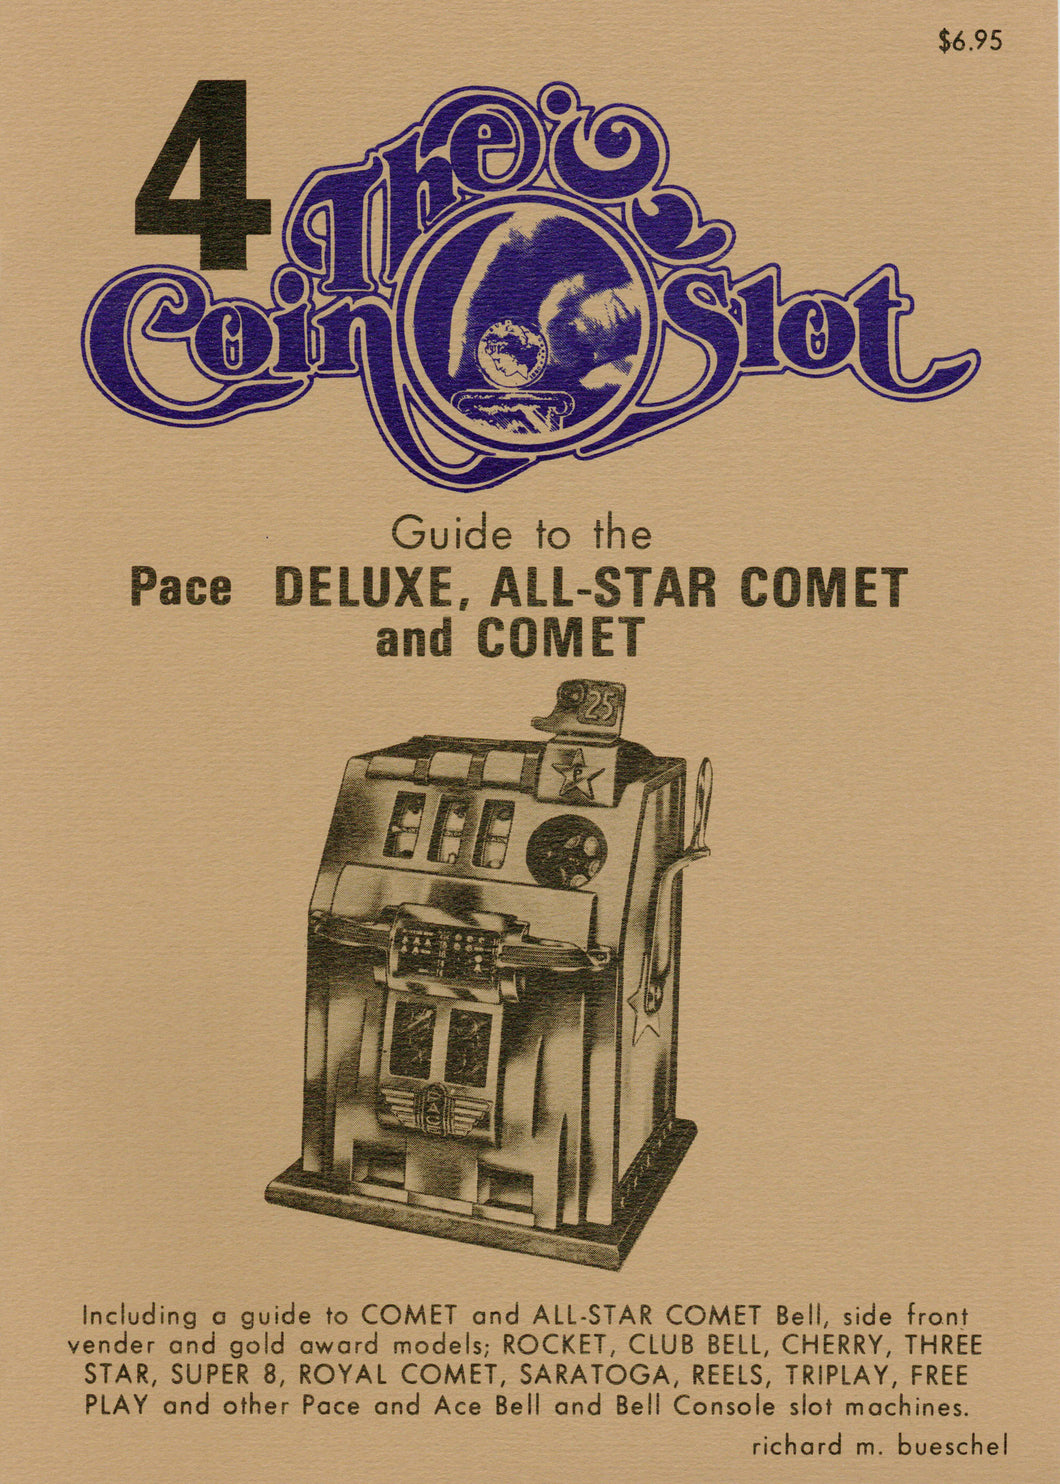 Coin Slot # 4. Guide to the Pace Deluxe, All-Star Comet and Comet